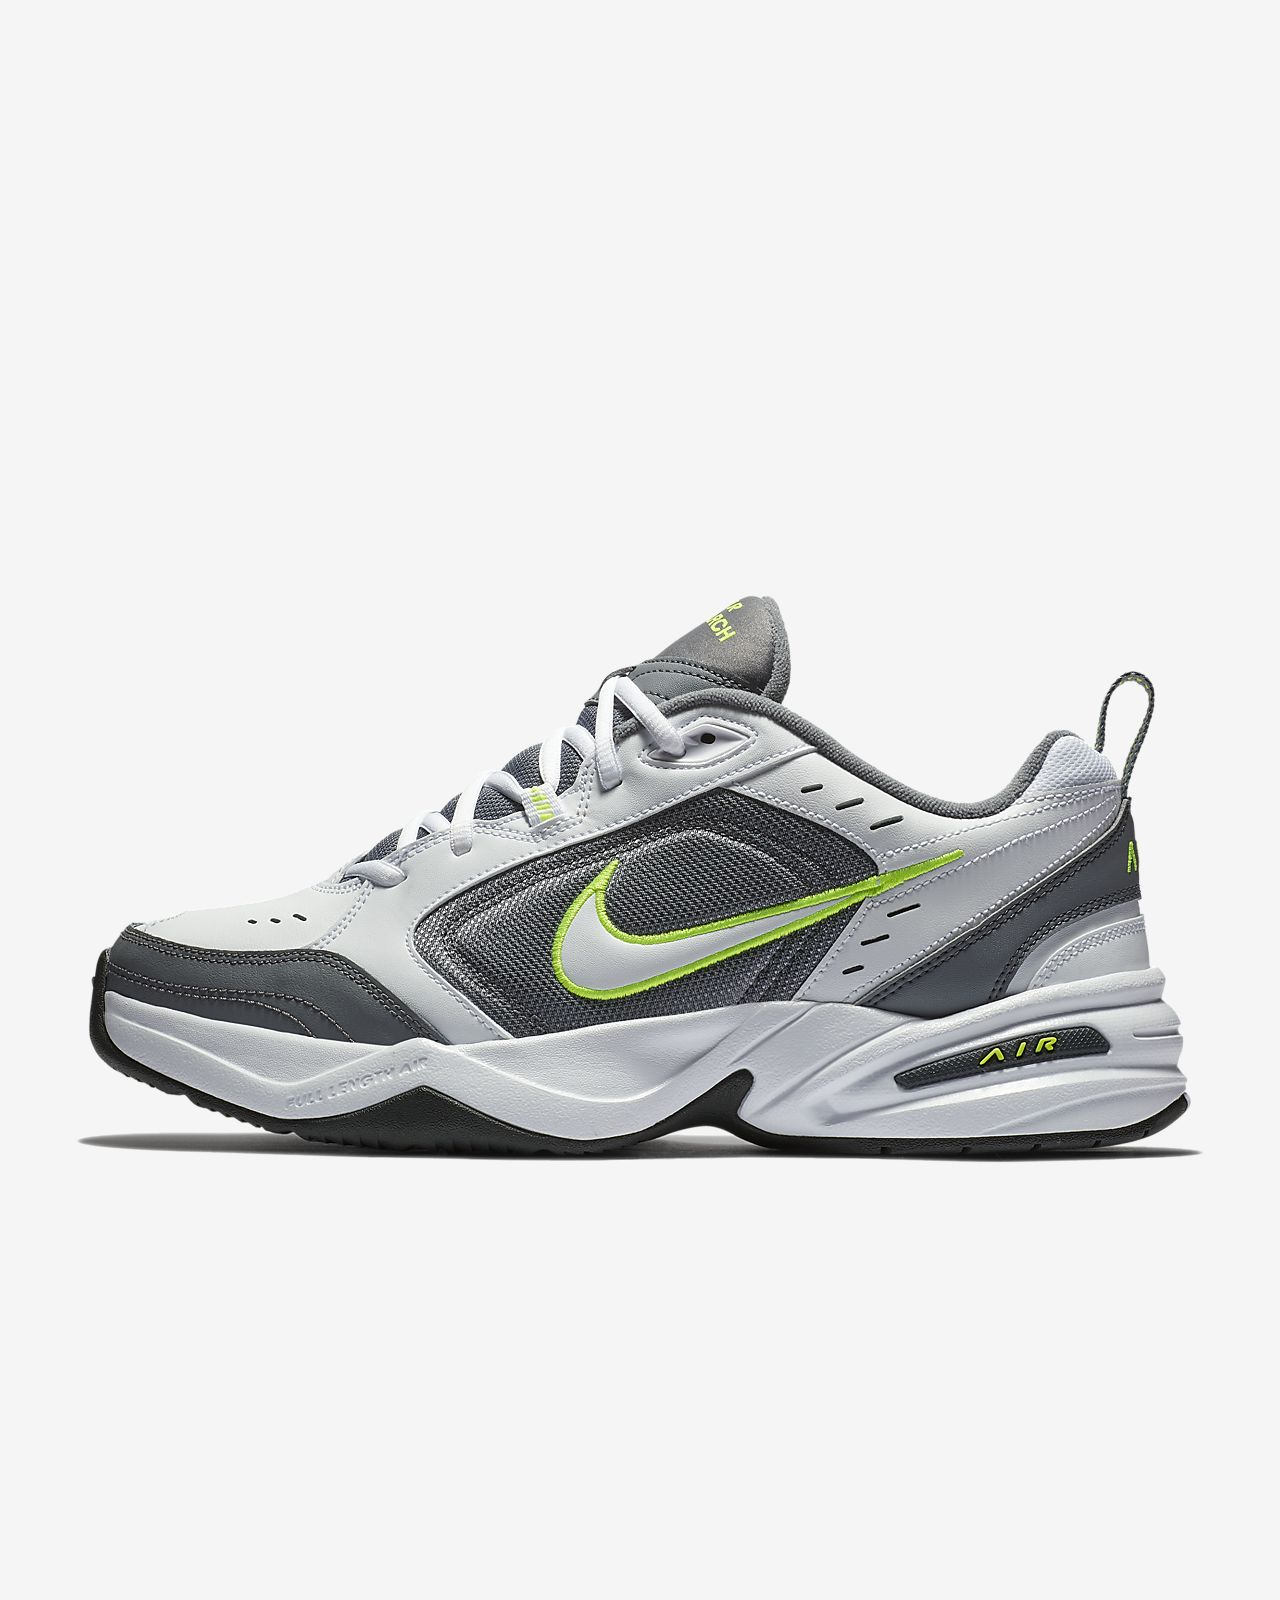 19e244f5bb61 Nike Air Monarch IV Lifestyle Gym Shoe. Nike.com